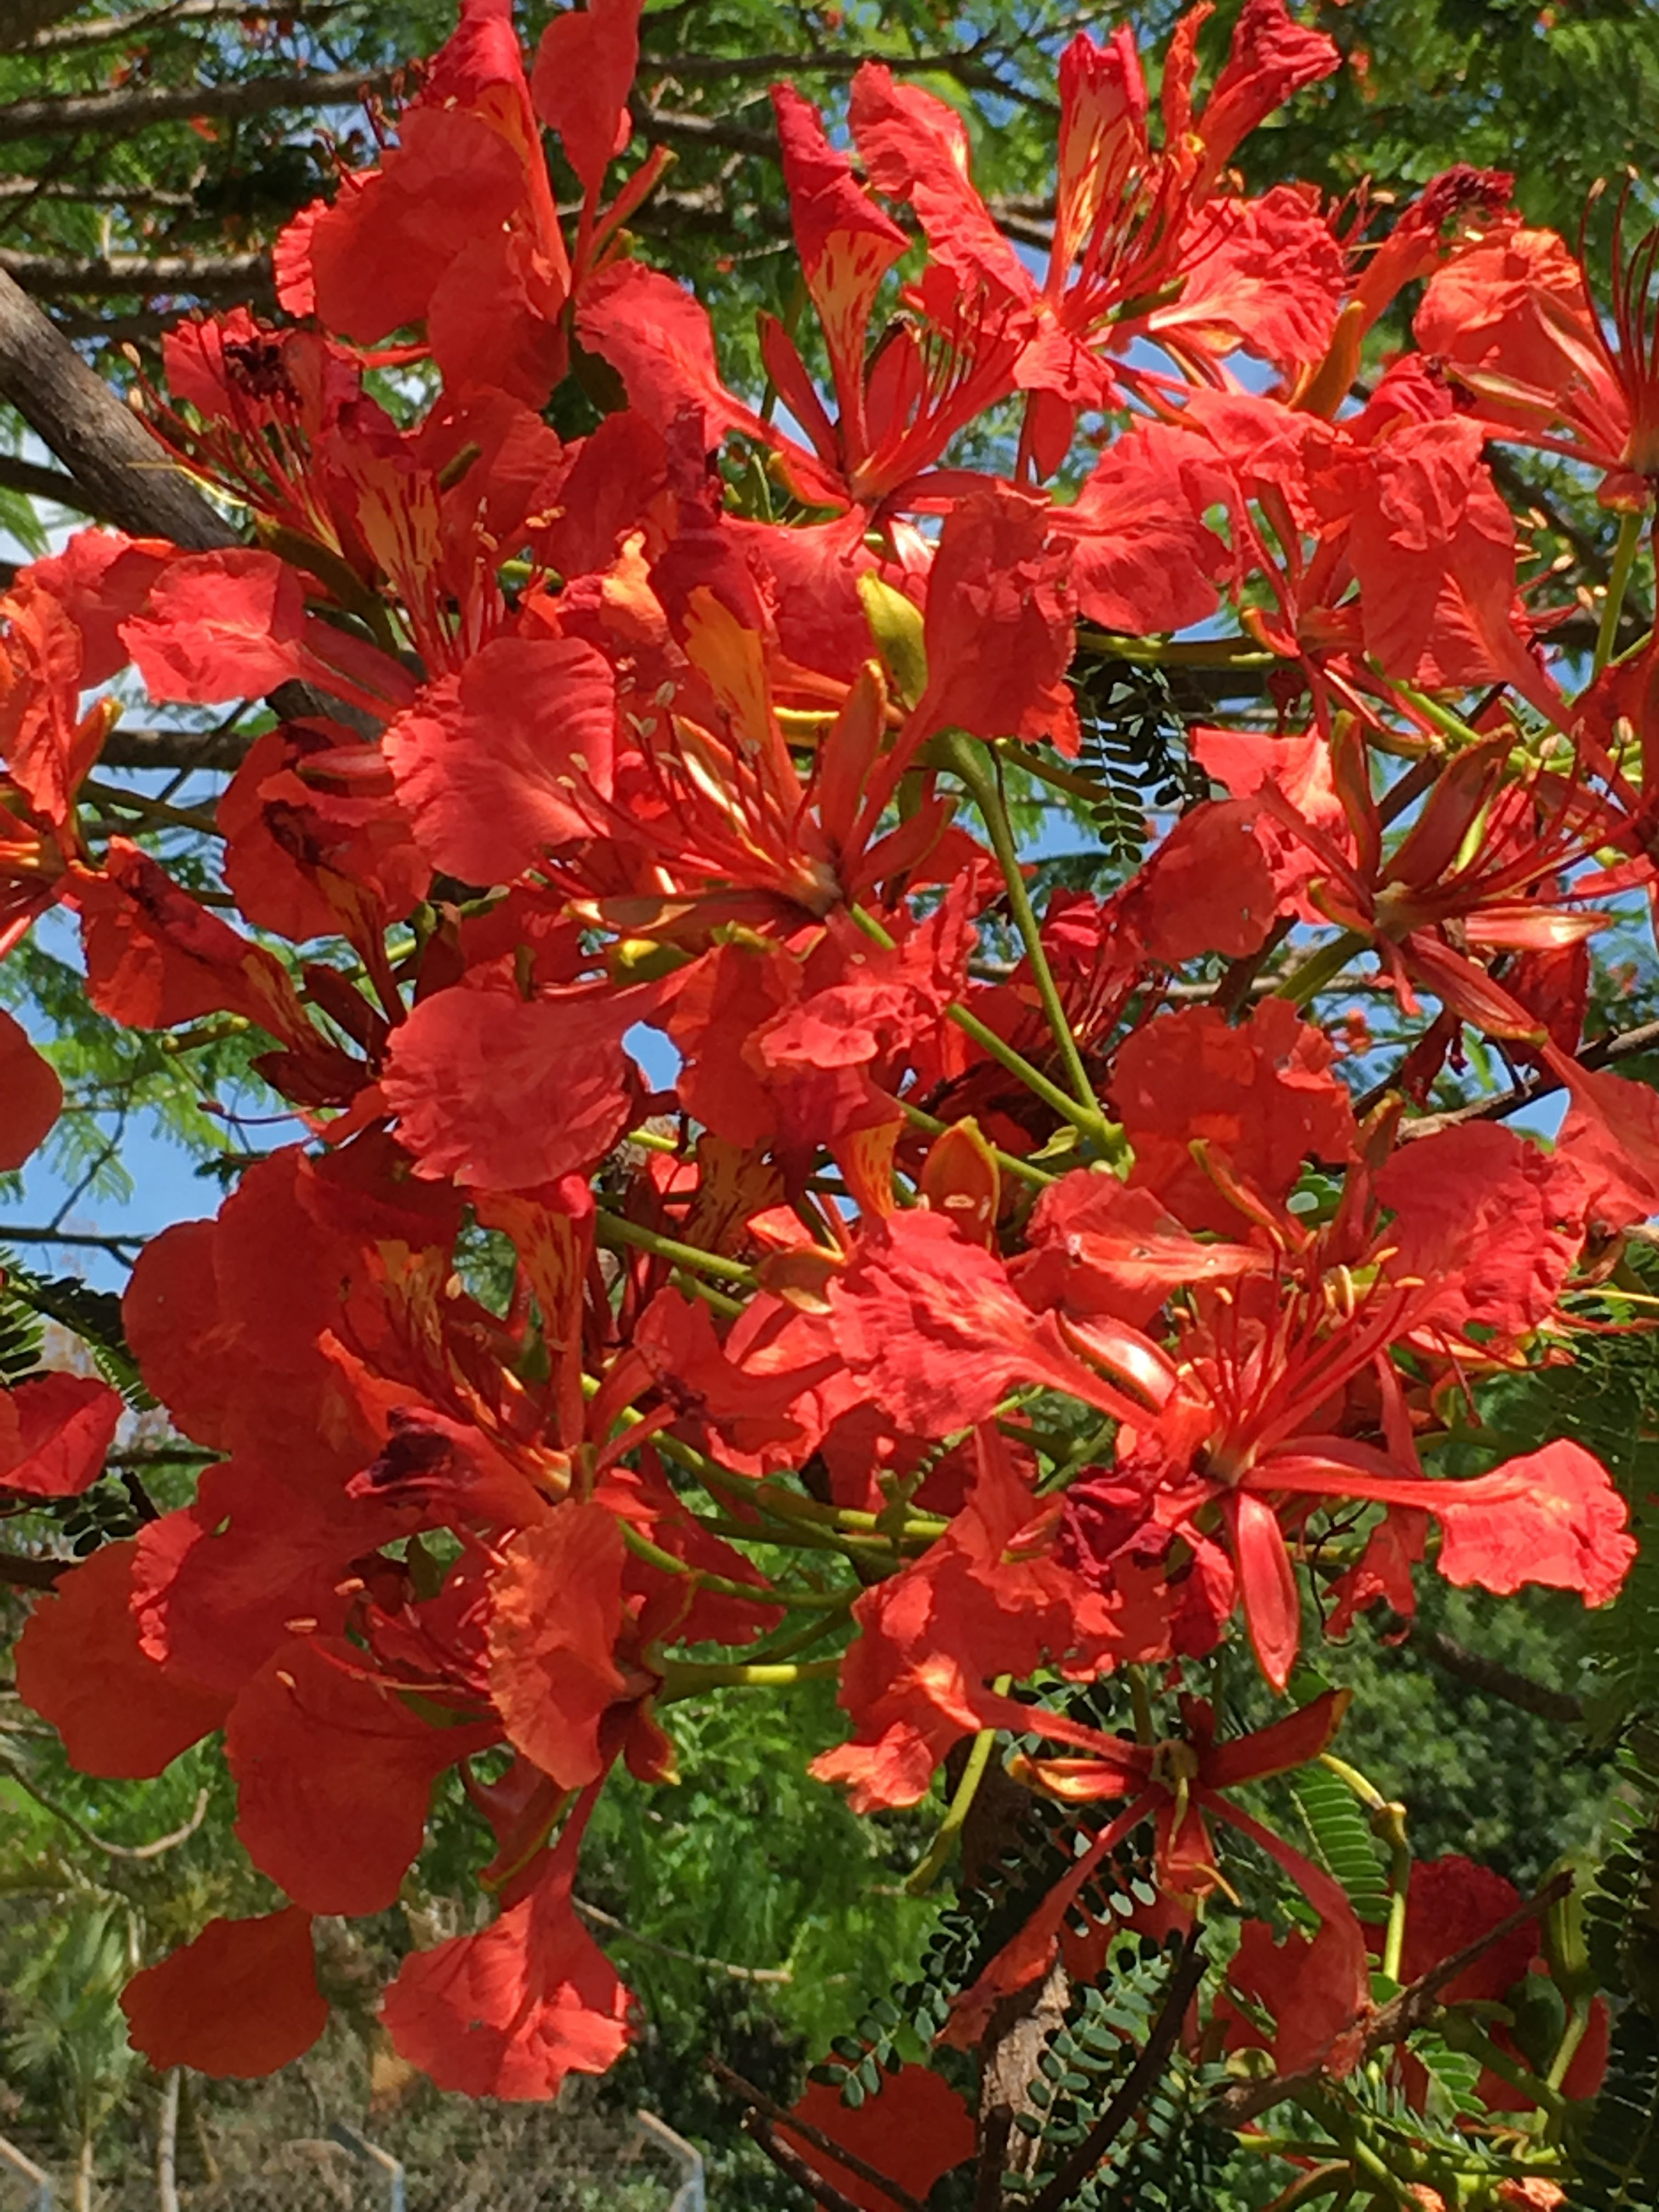 Pin by ประภา on ดอกไม้ Flowering trees, Flower pictures